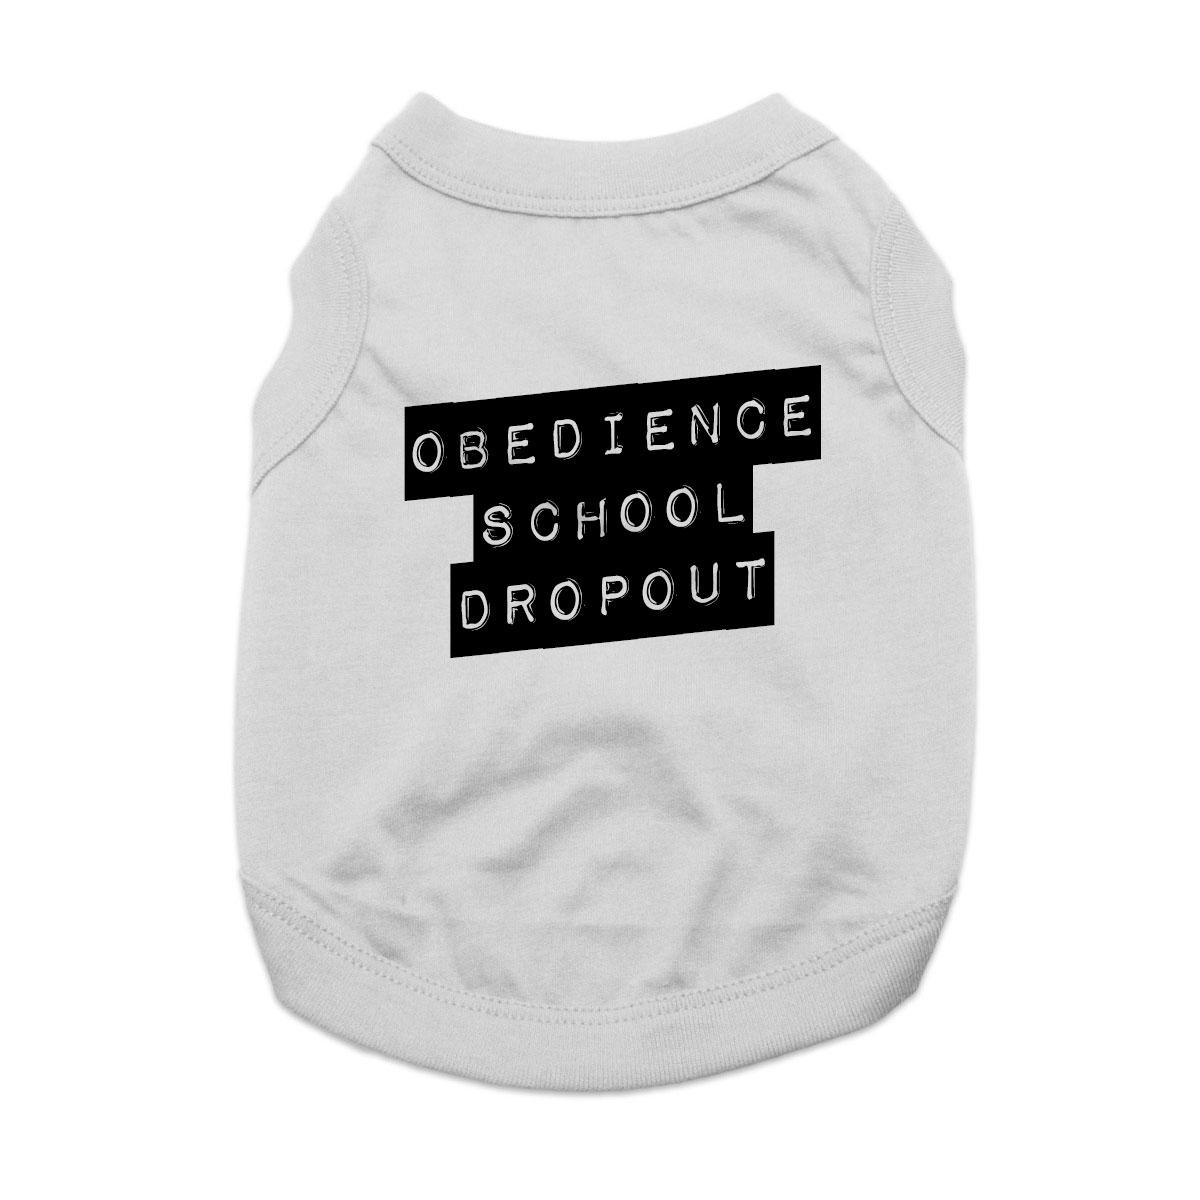 Obedience School Dropout Dog Shirt - Gray